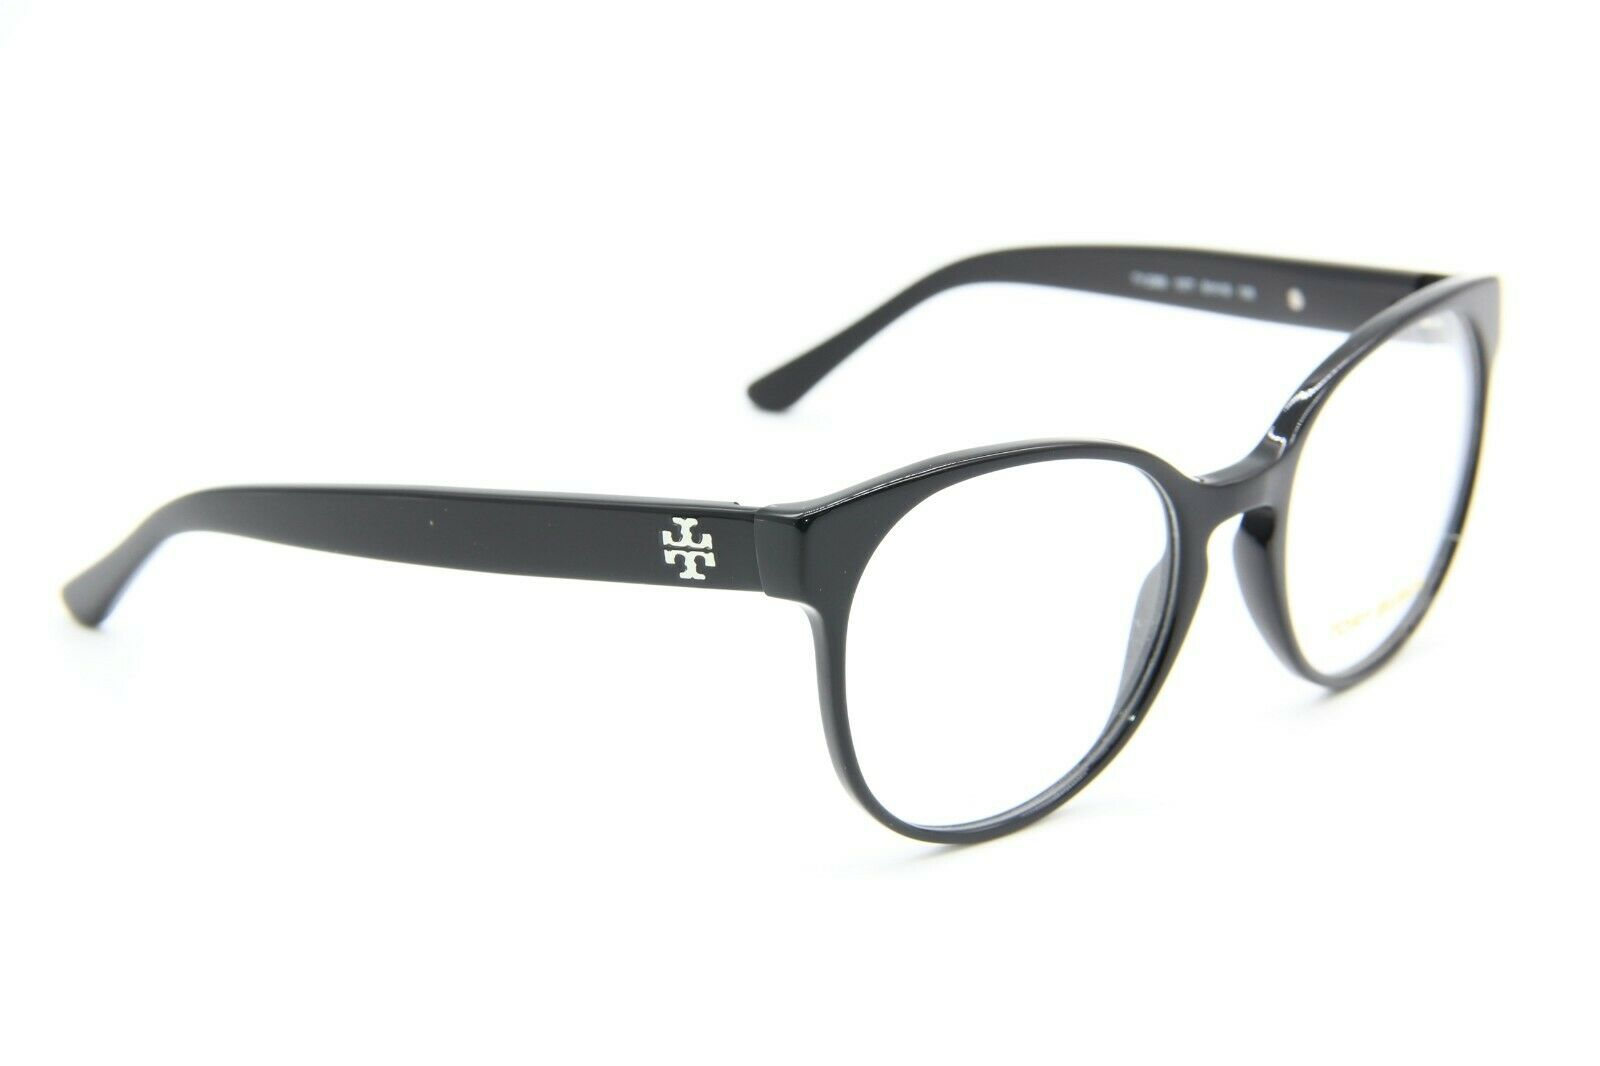 Tory Burch Eyeglasses TY2069 1377 Rx-ABLE